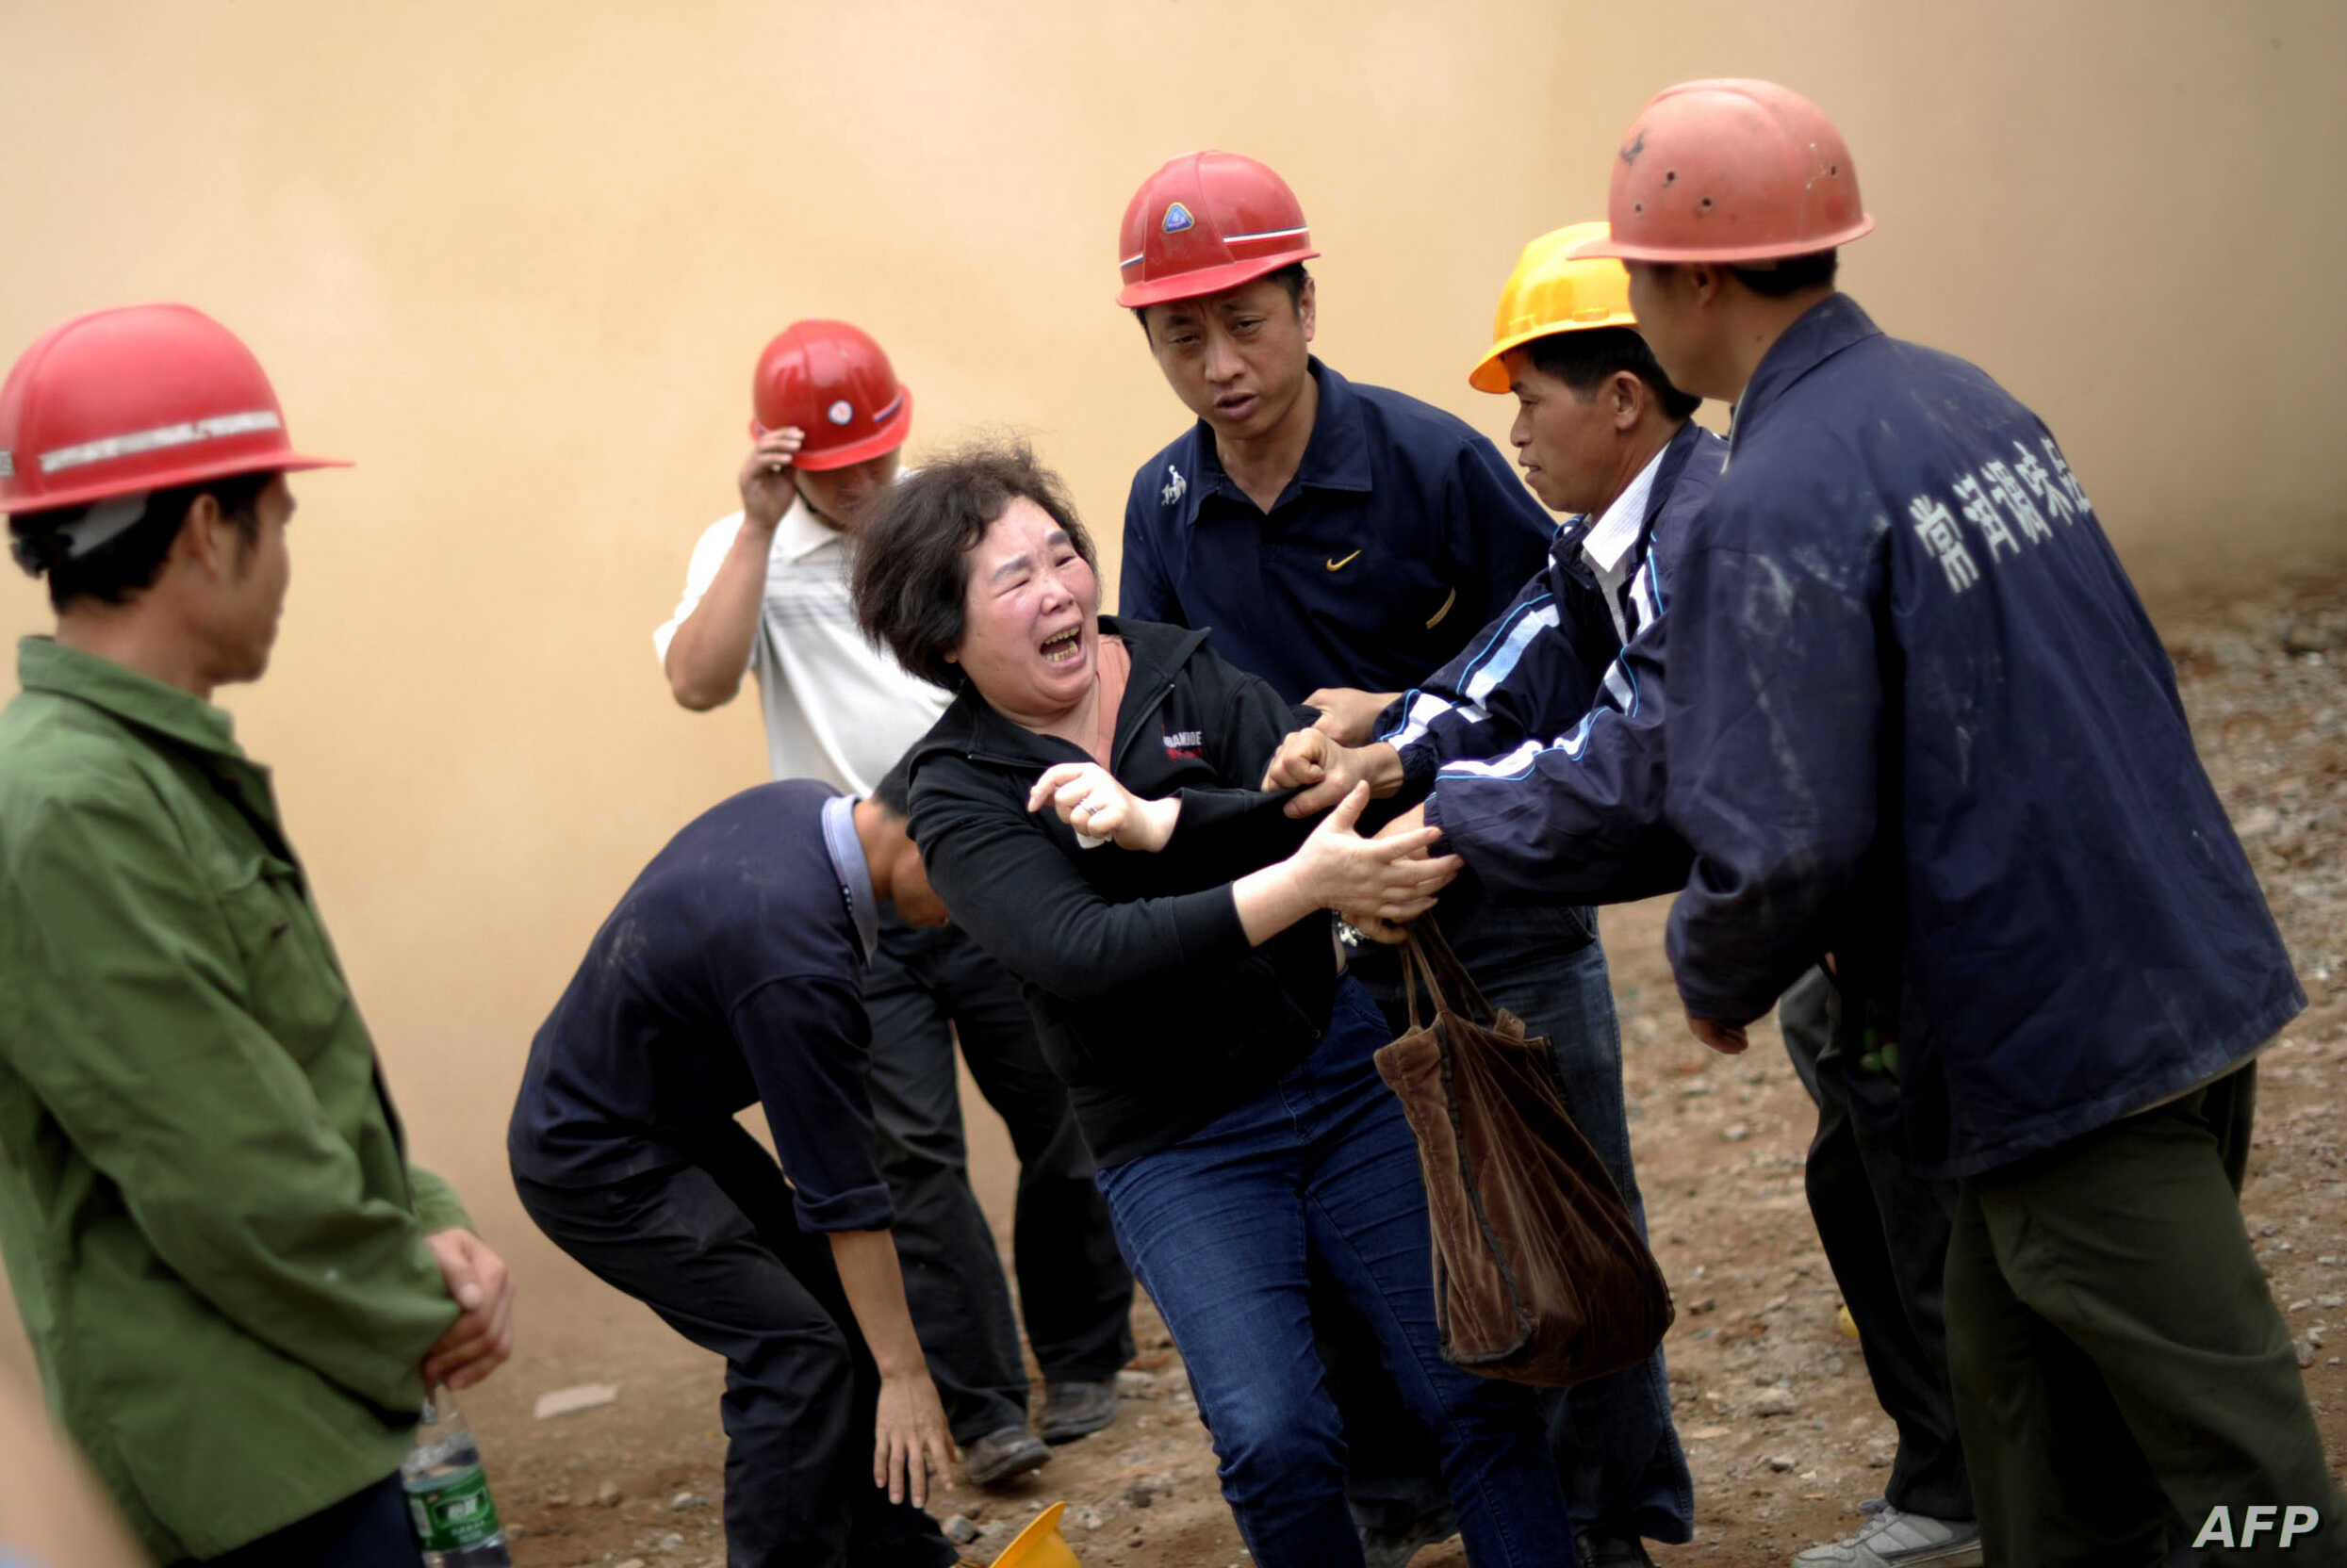 Huang Sufang (C) attempts to protect her home as workers move in for demolition orders in Yangji village, Guangzhou, south China's Guangdong province on March 21, 2012.